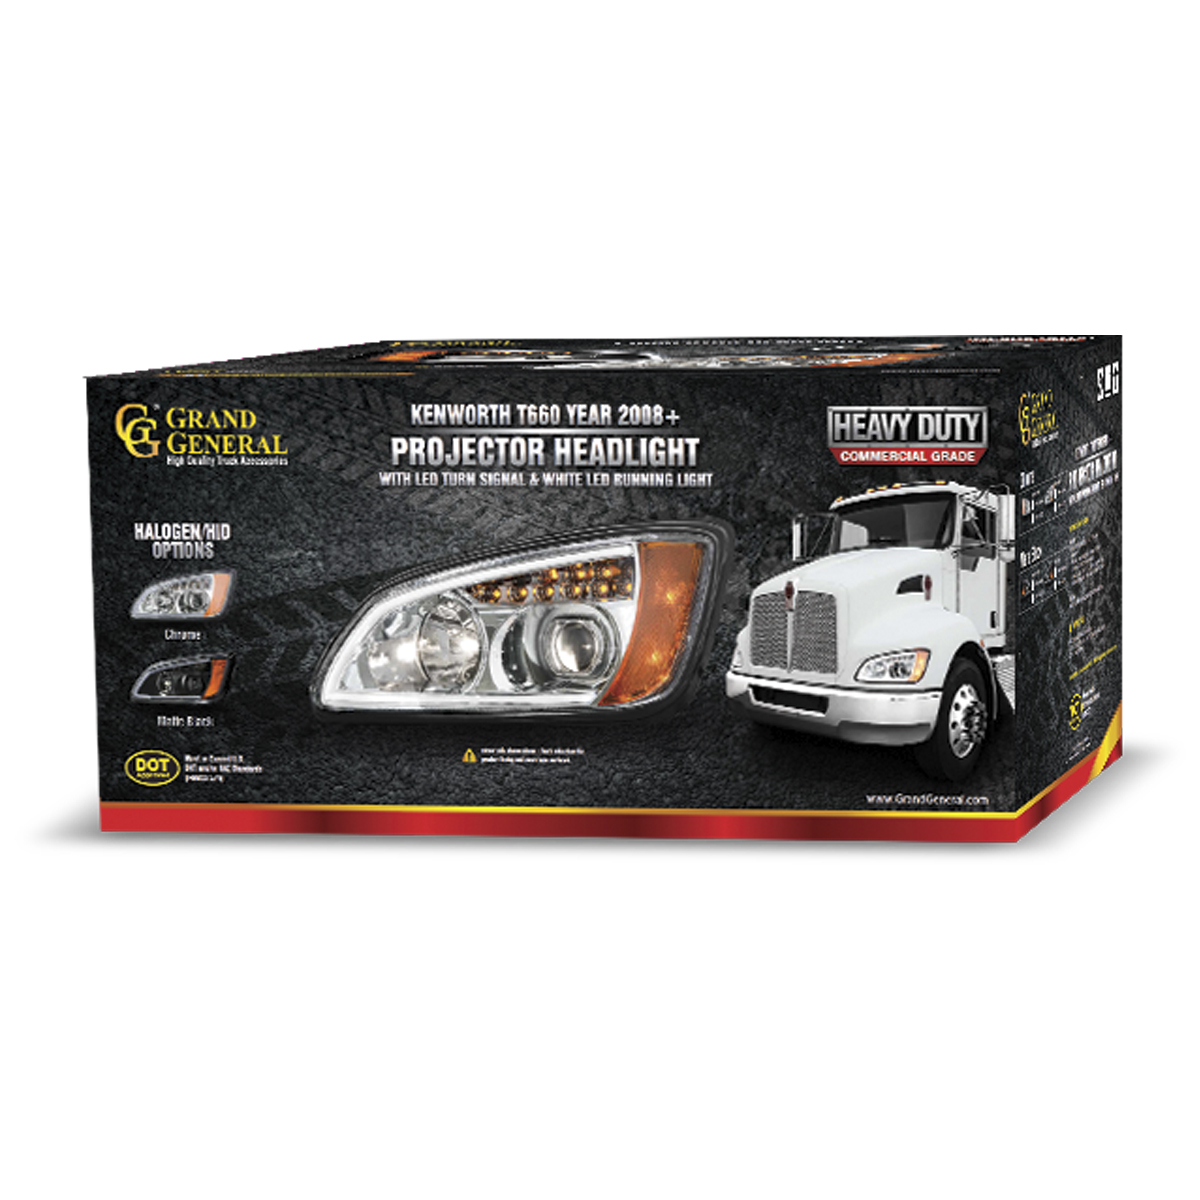 Kenworth T660 Chrome Projection Headlight w/ LED Turn Signal & White LED Running Light